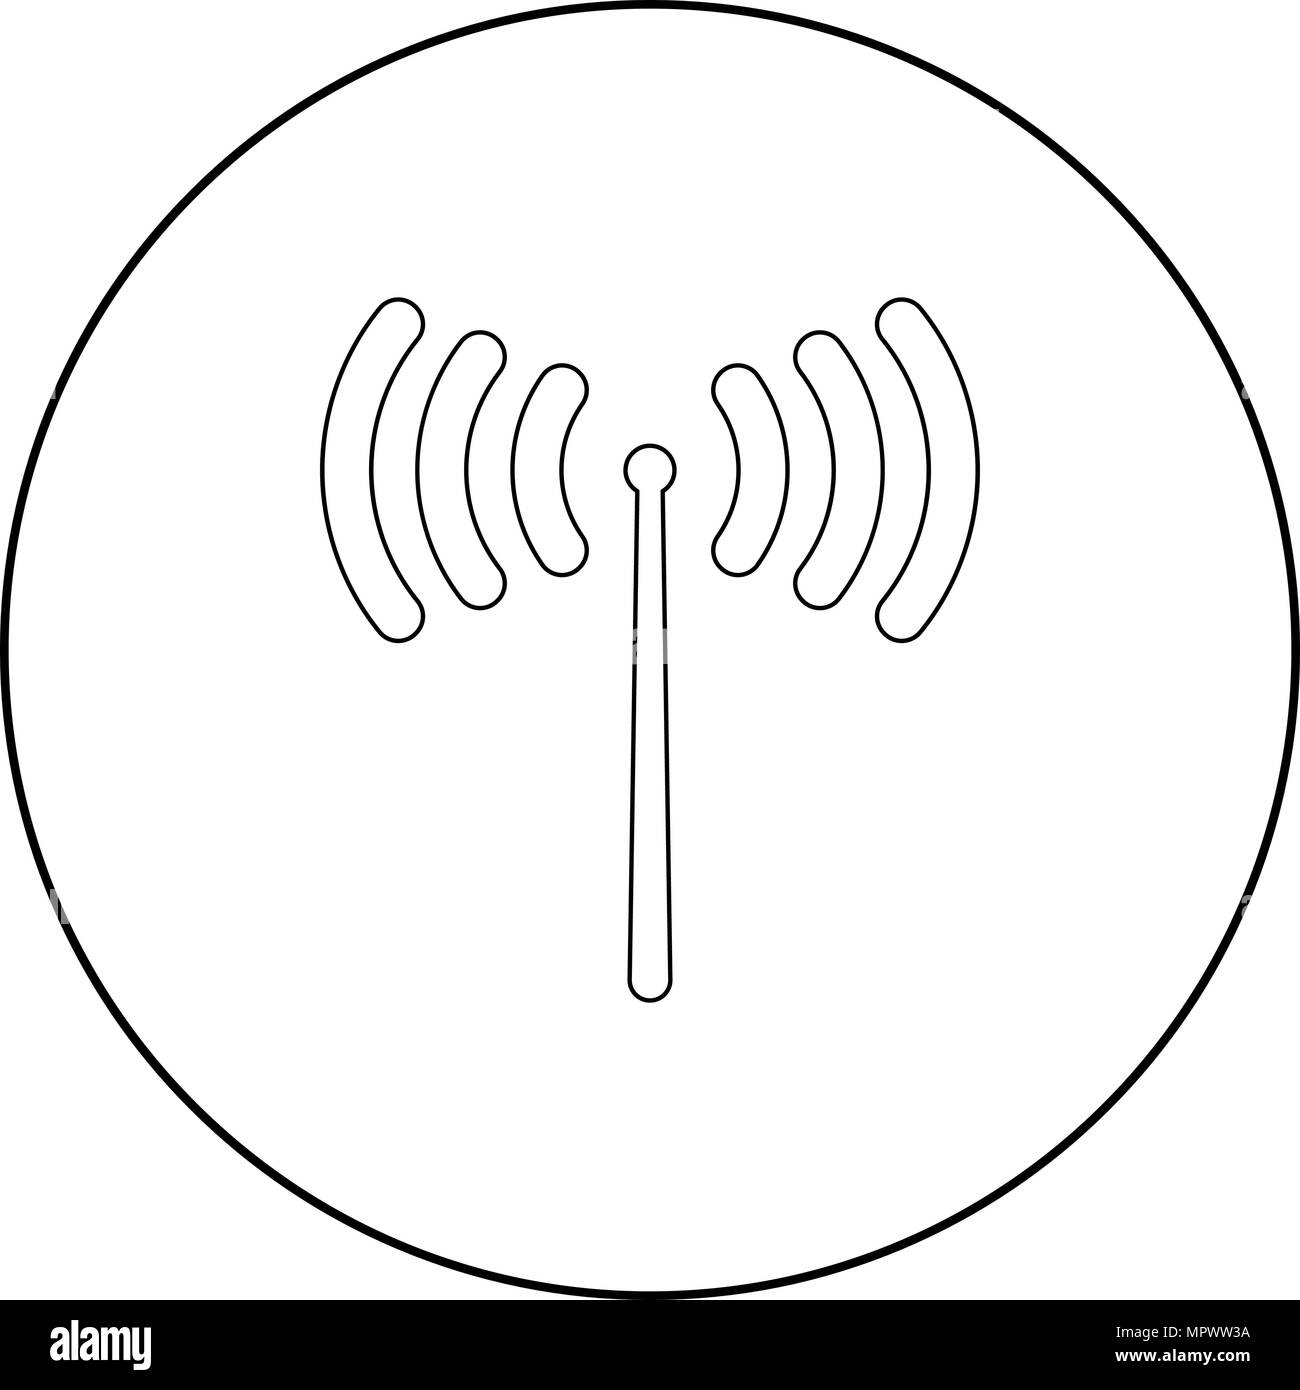 Radio signal  icon black color in circle or round vector illustration - Stock Image